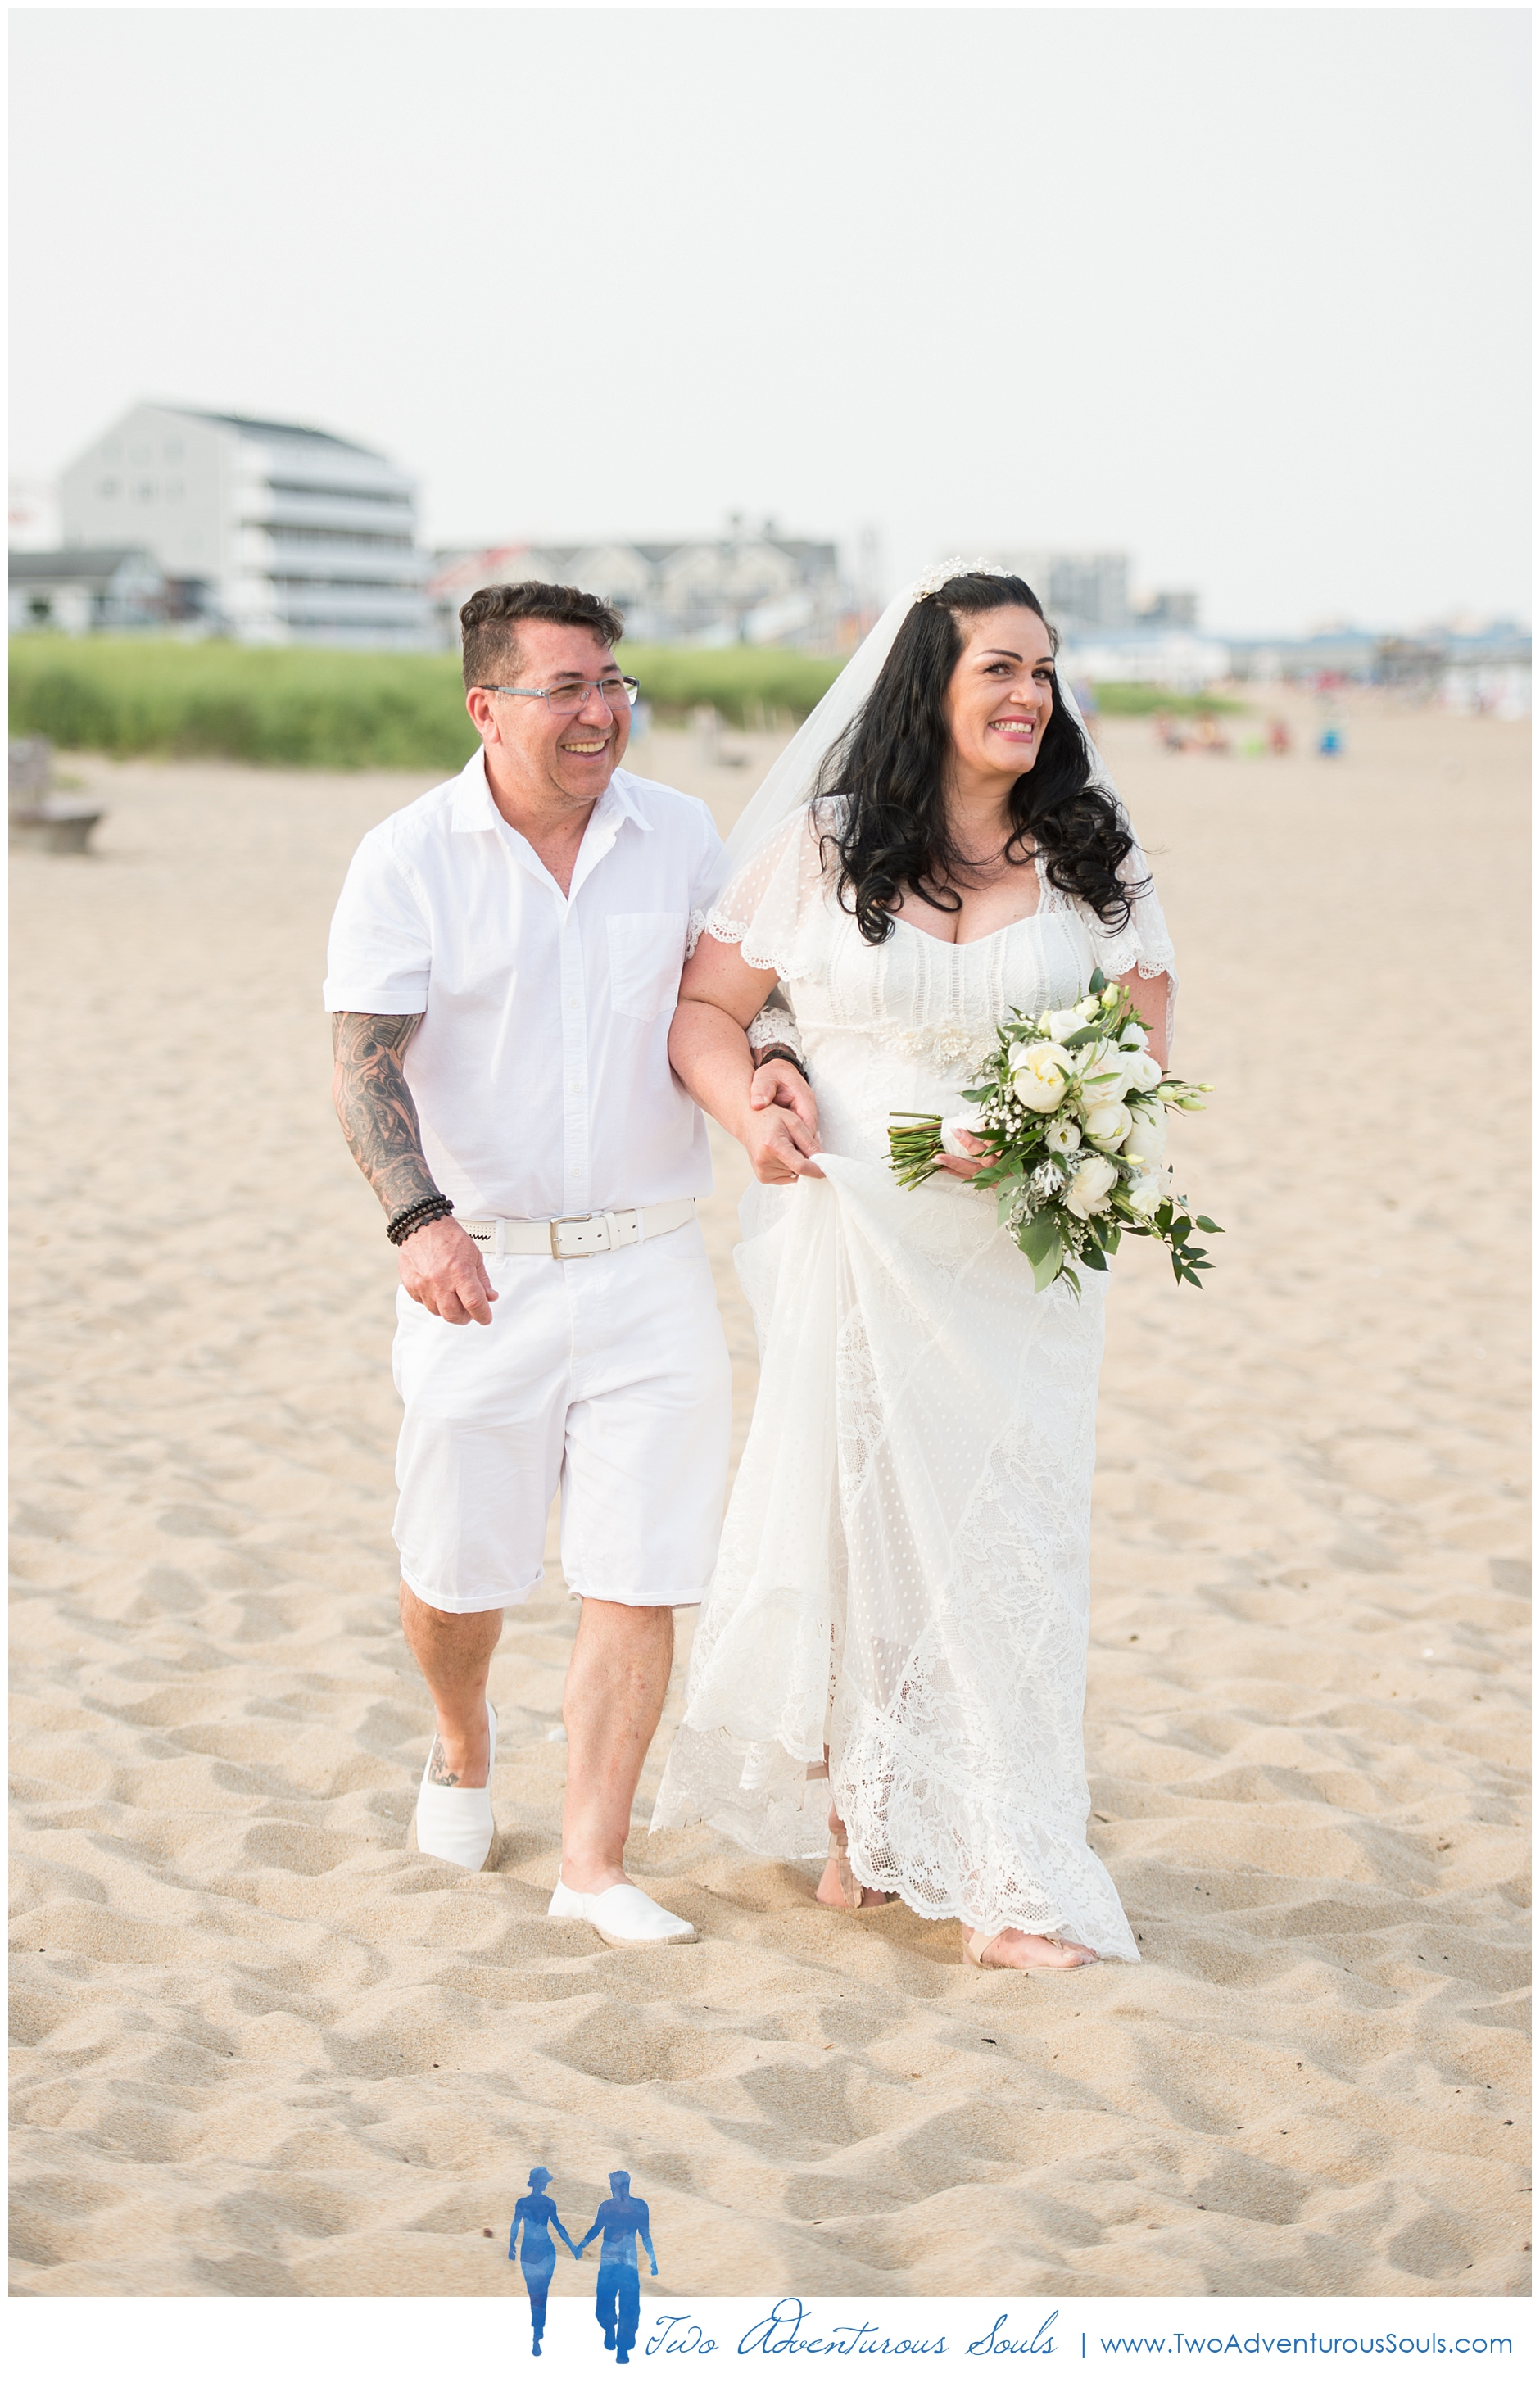 Old Orchard Wedding Photographers, Old Orchard Beach Photographers, Maine Elopement Photographers, Two Adventurous Souls-070919_0007.jpg